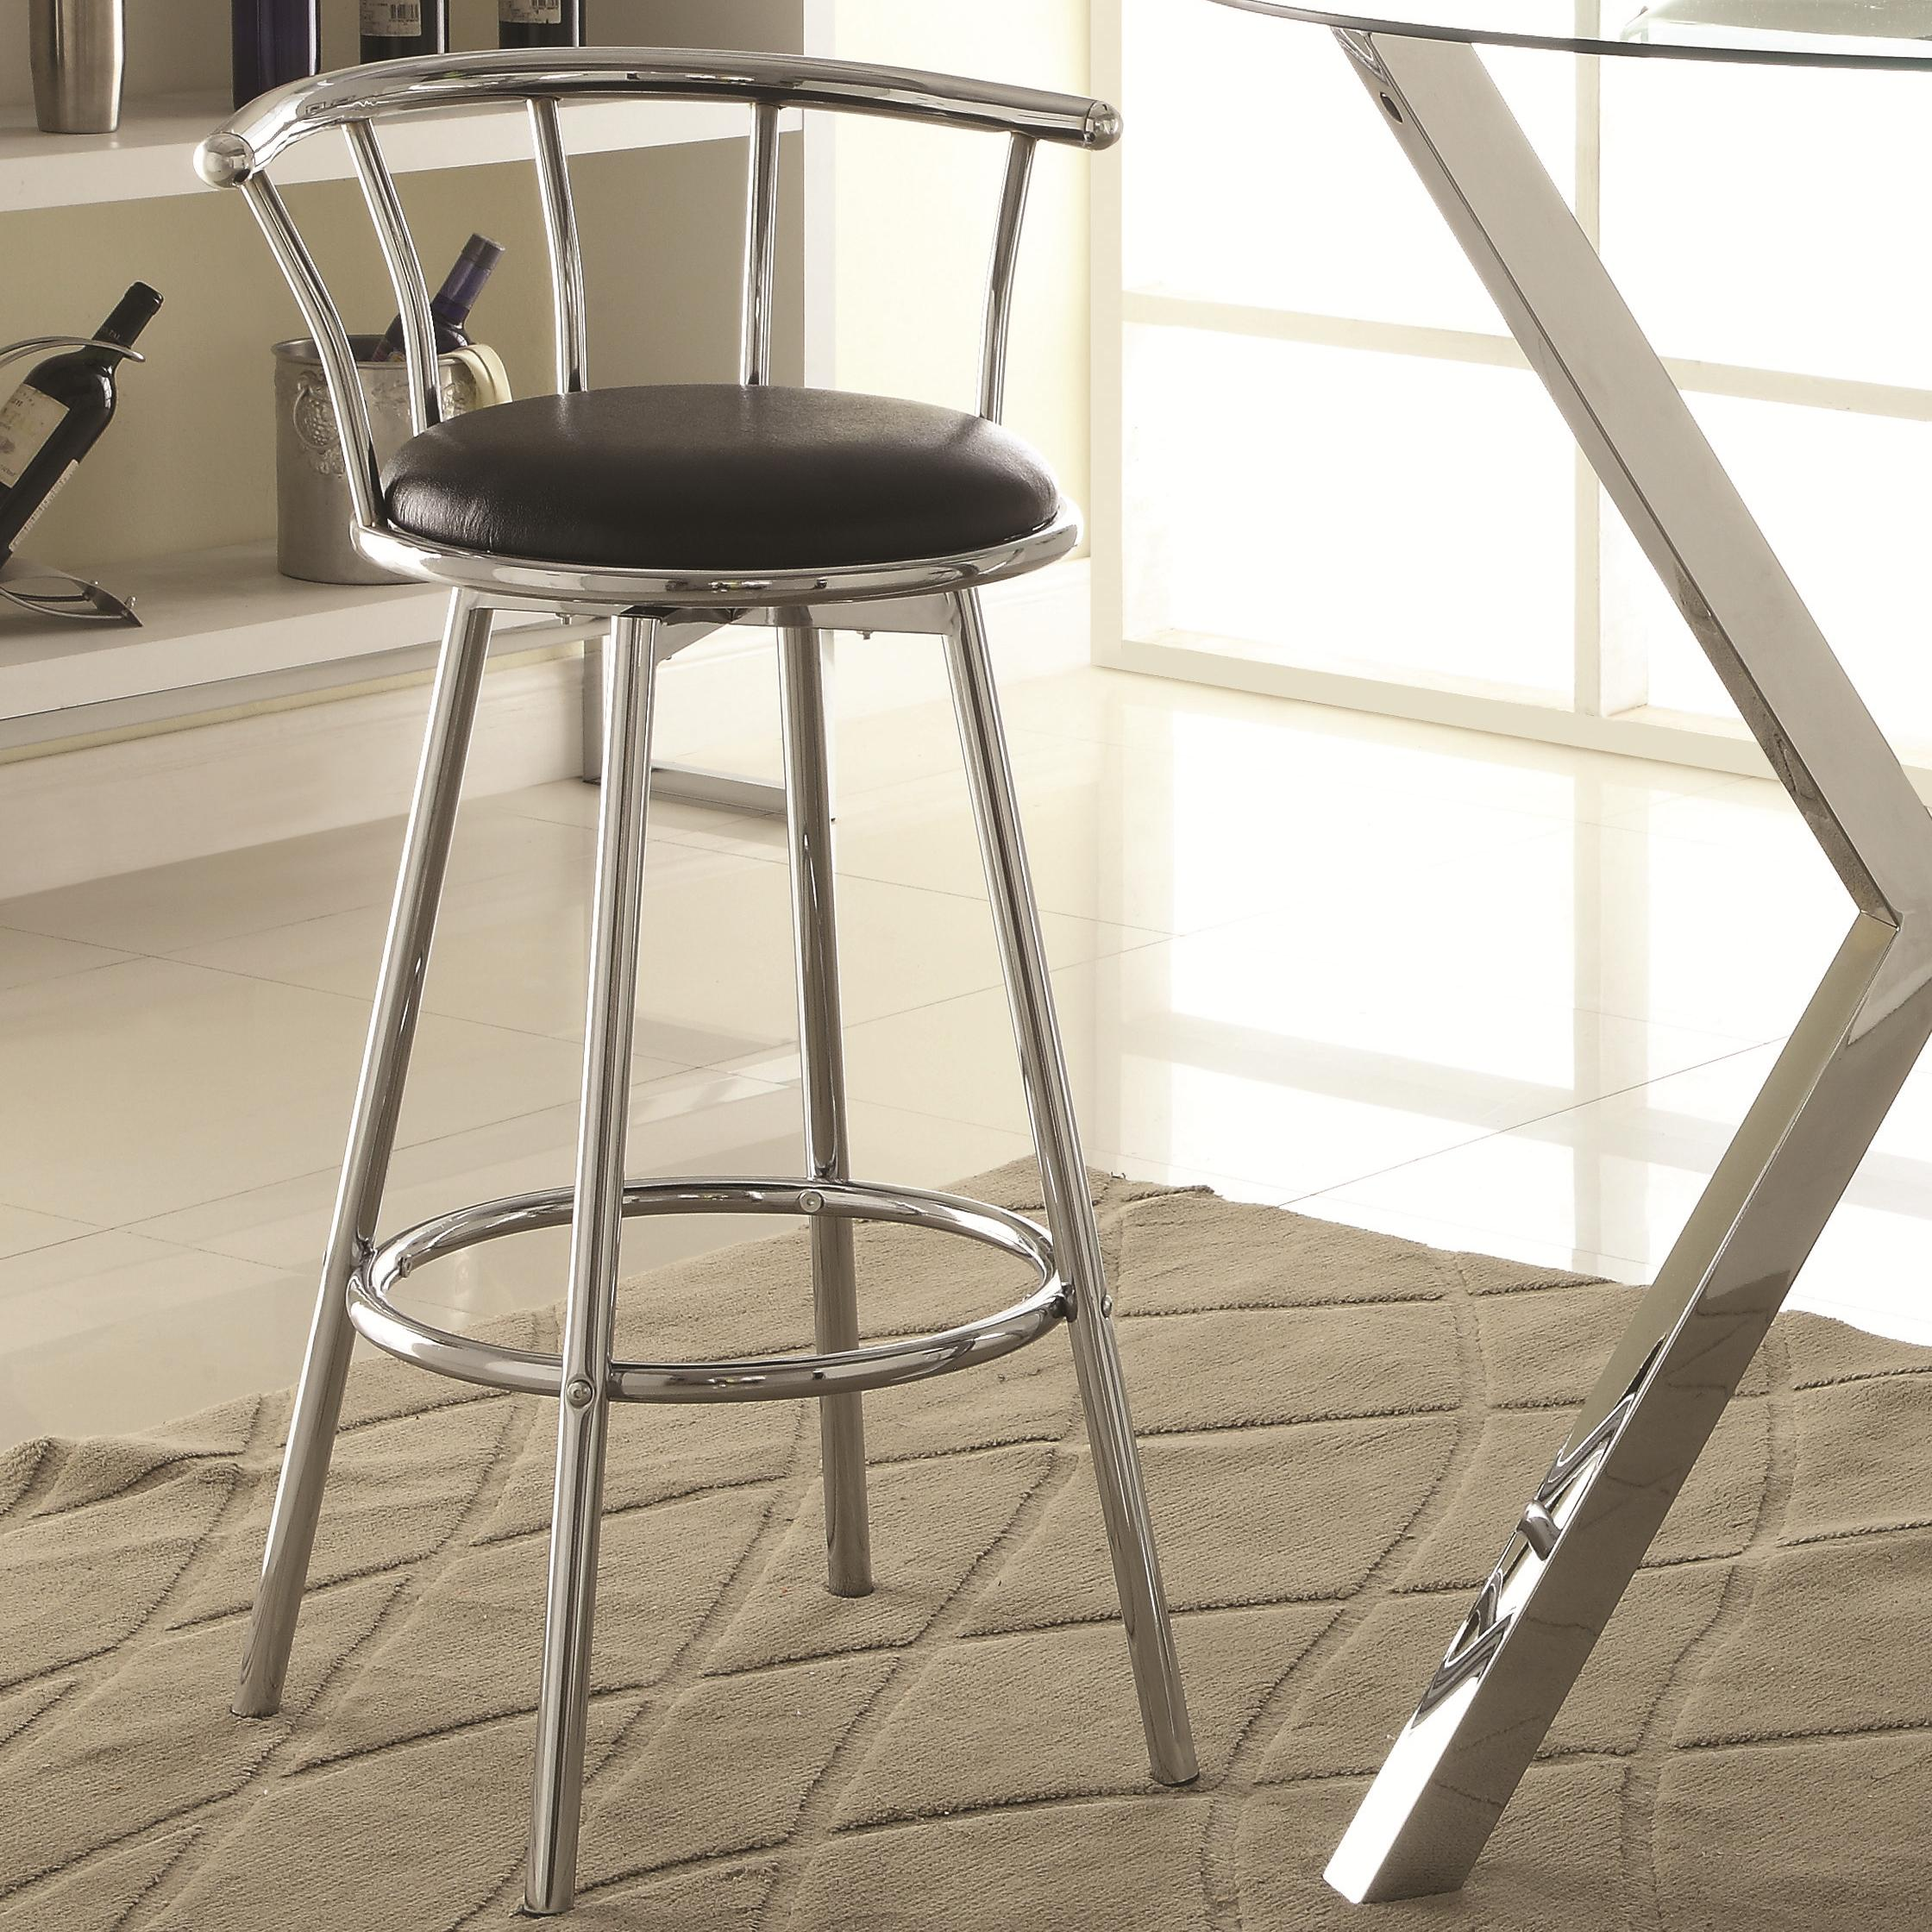 Coaster Bar Units and Bar Tables Bar Stool - Item Number: 2244